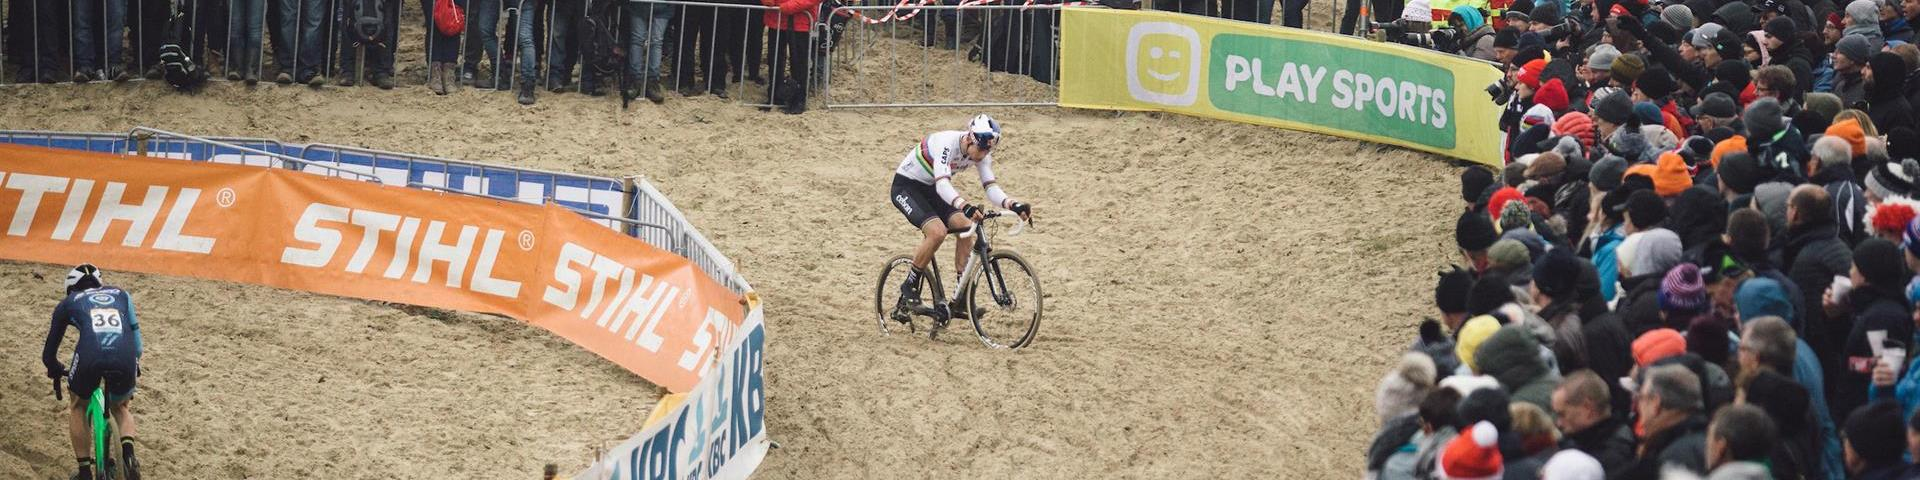 Koksijde World Cup